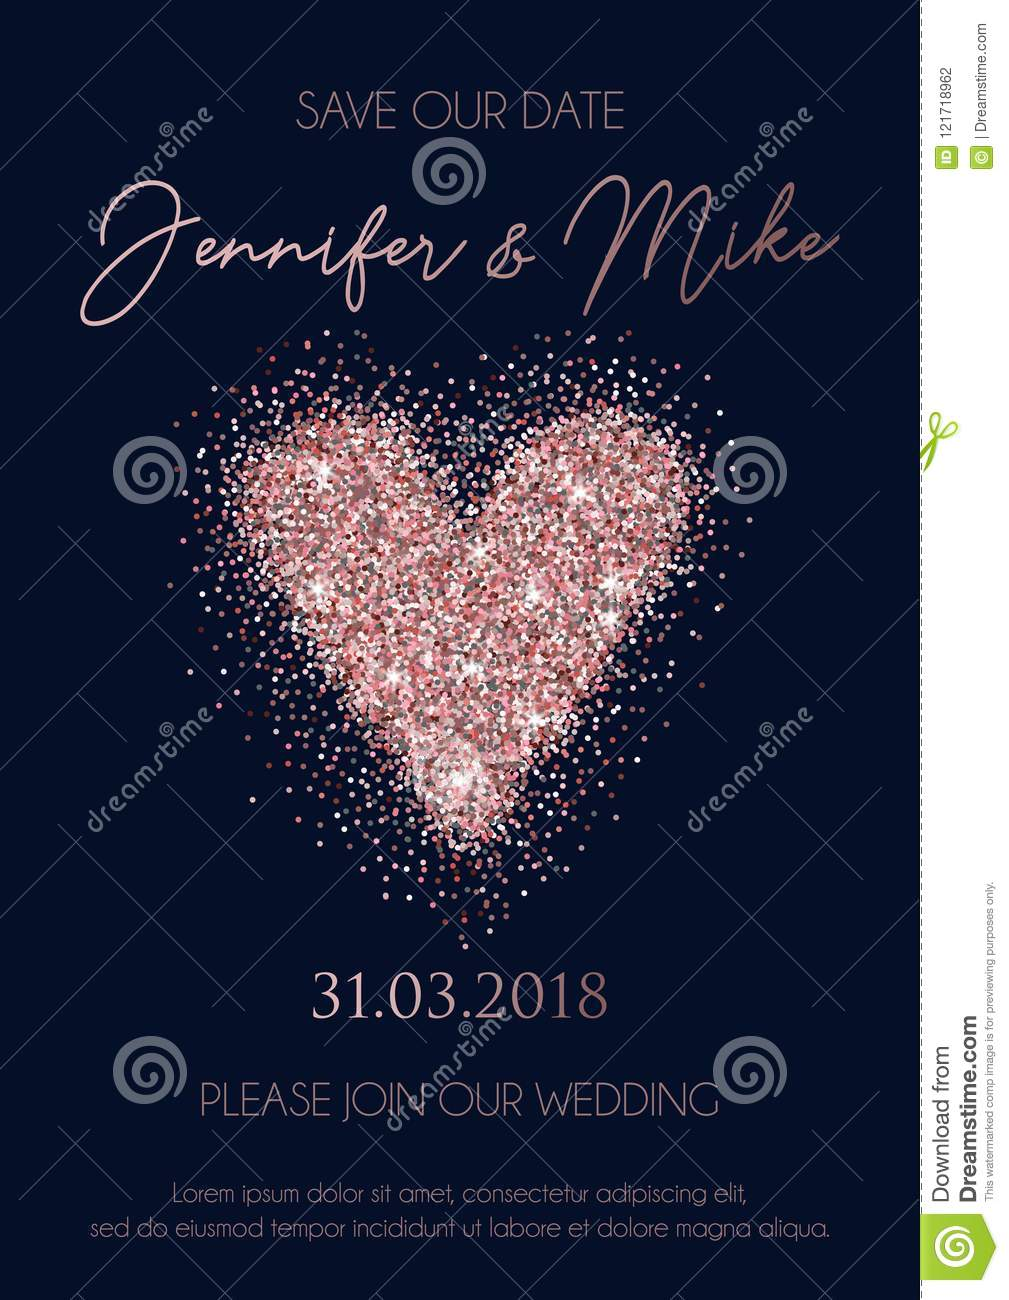 Save Our Date Wedding Invitation Design Elegance Template For